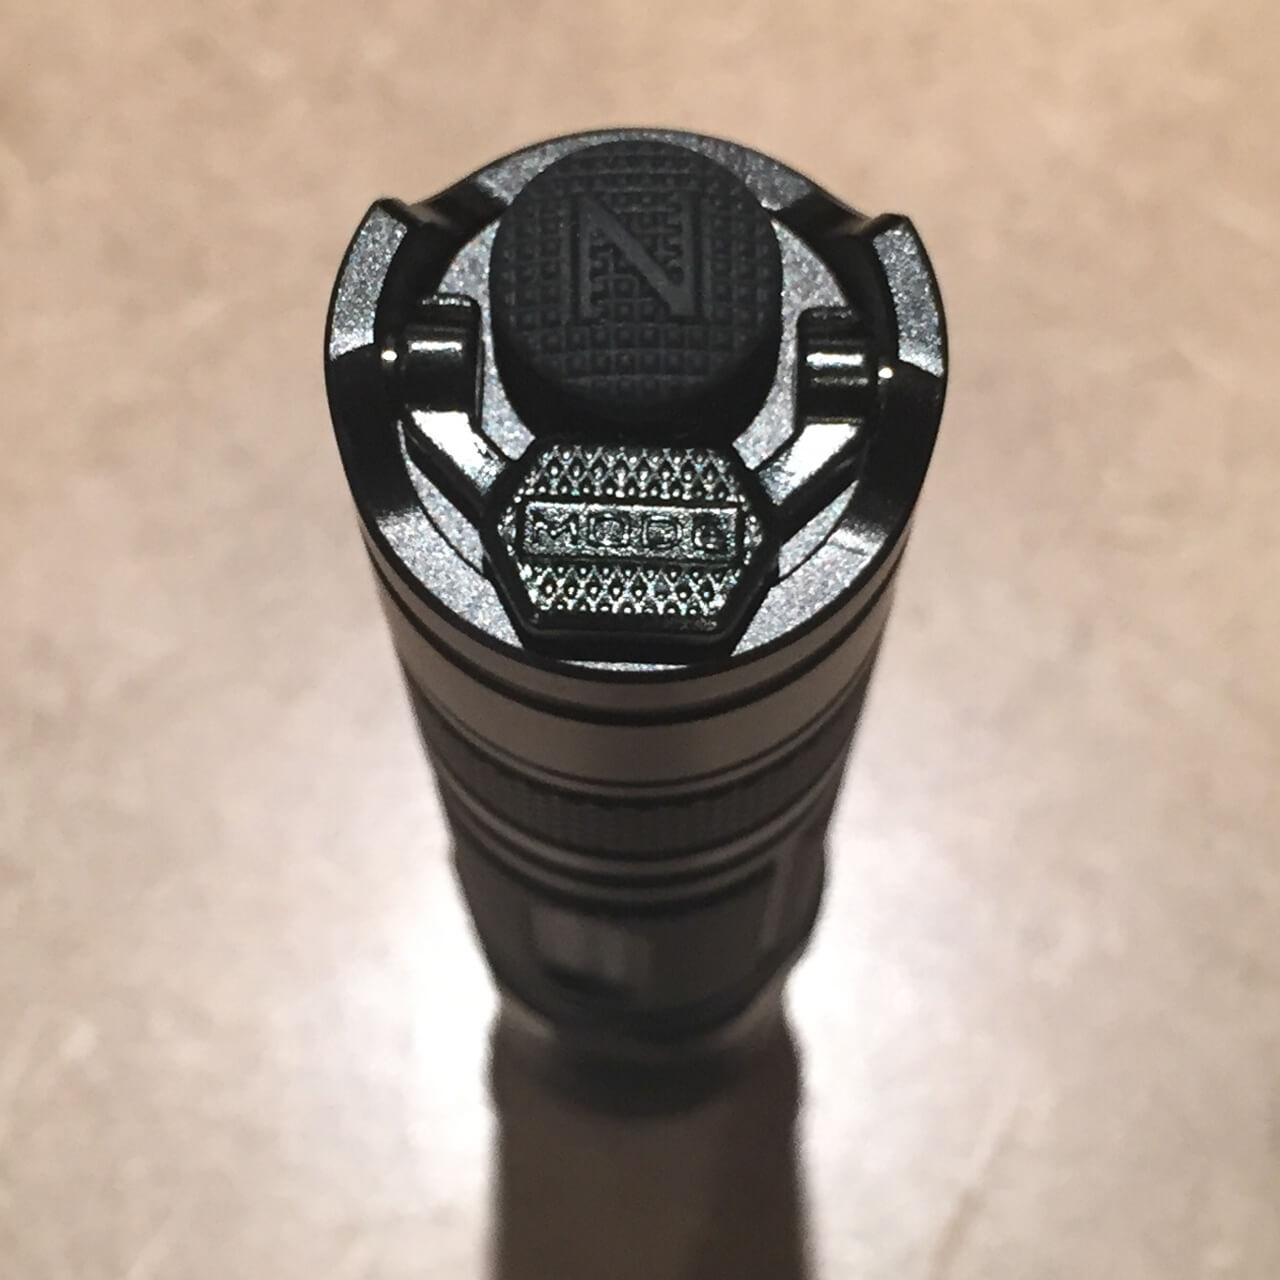 Nitecore P10GT dual tail switches